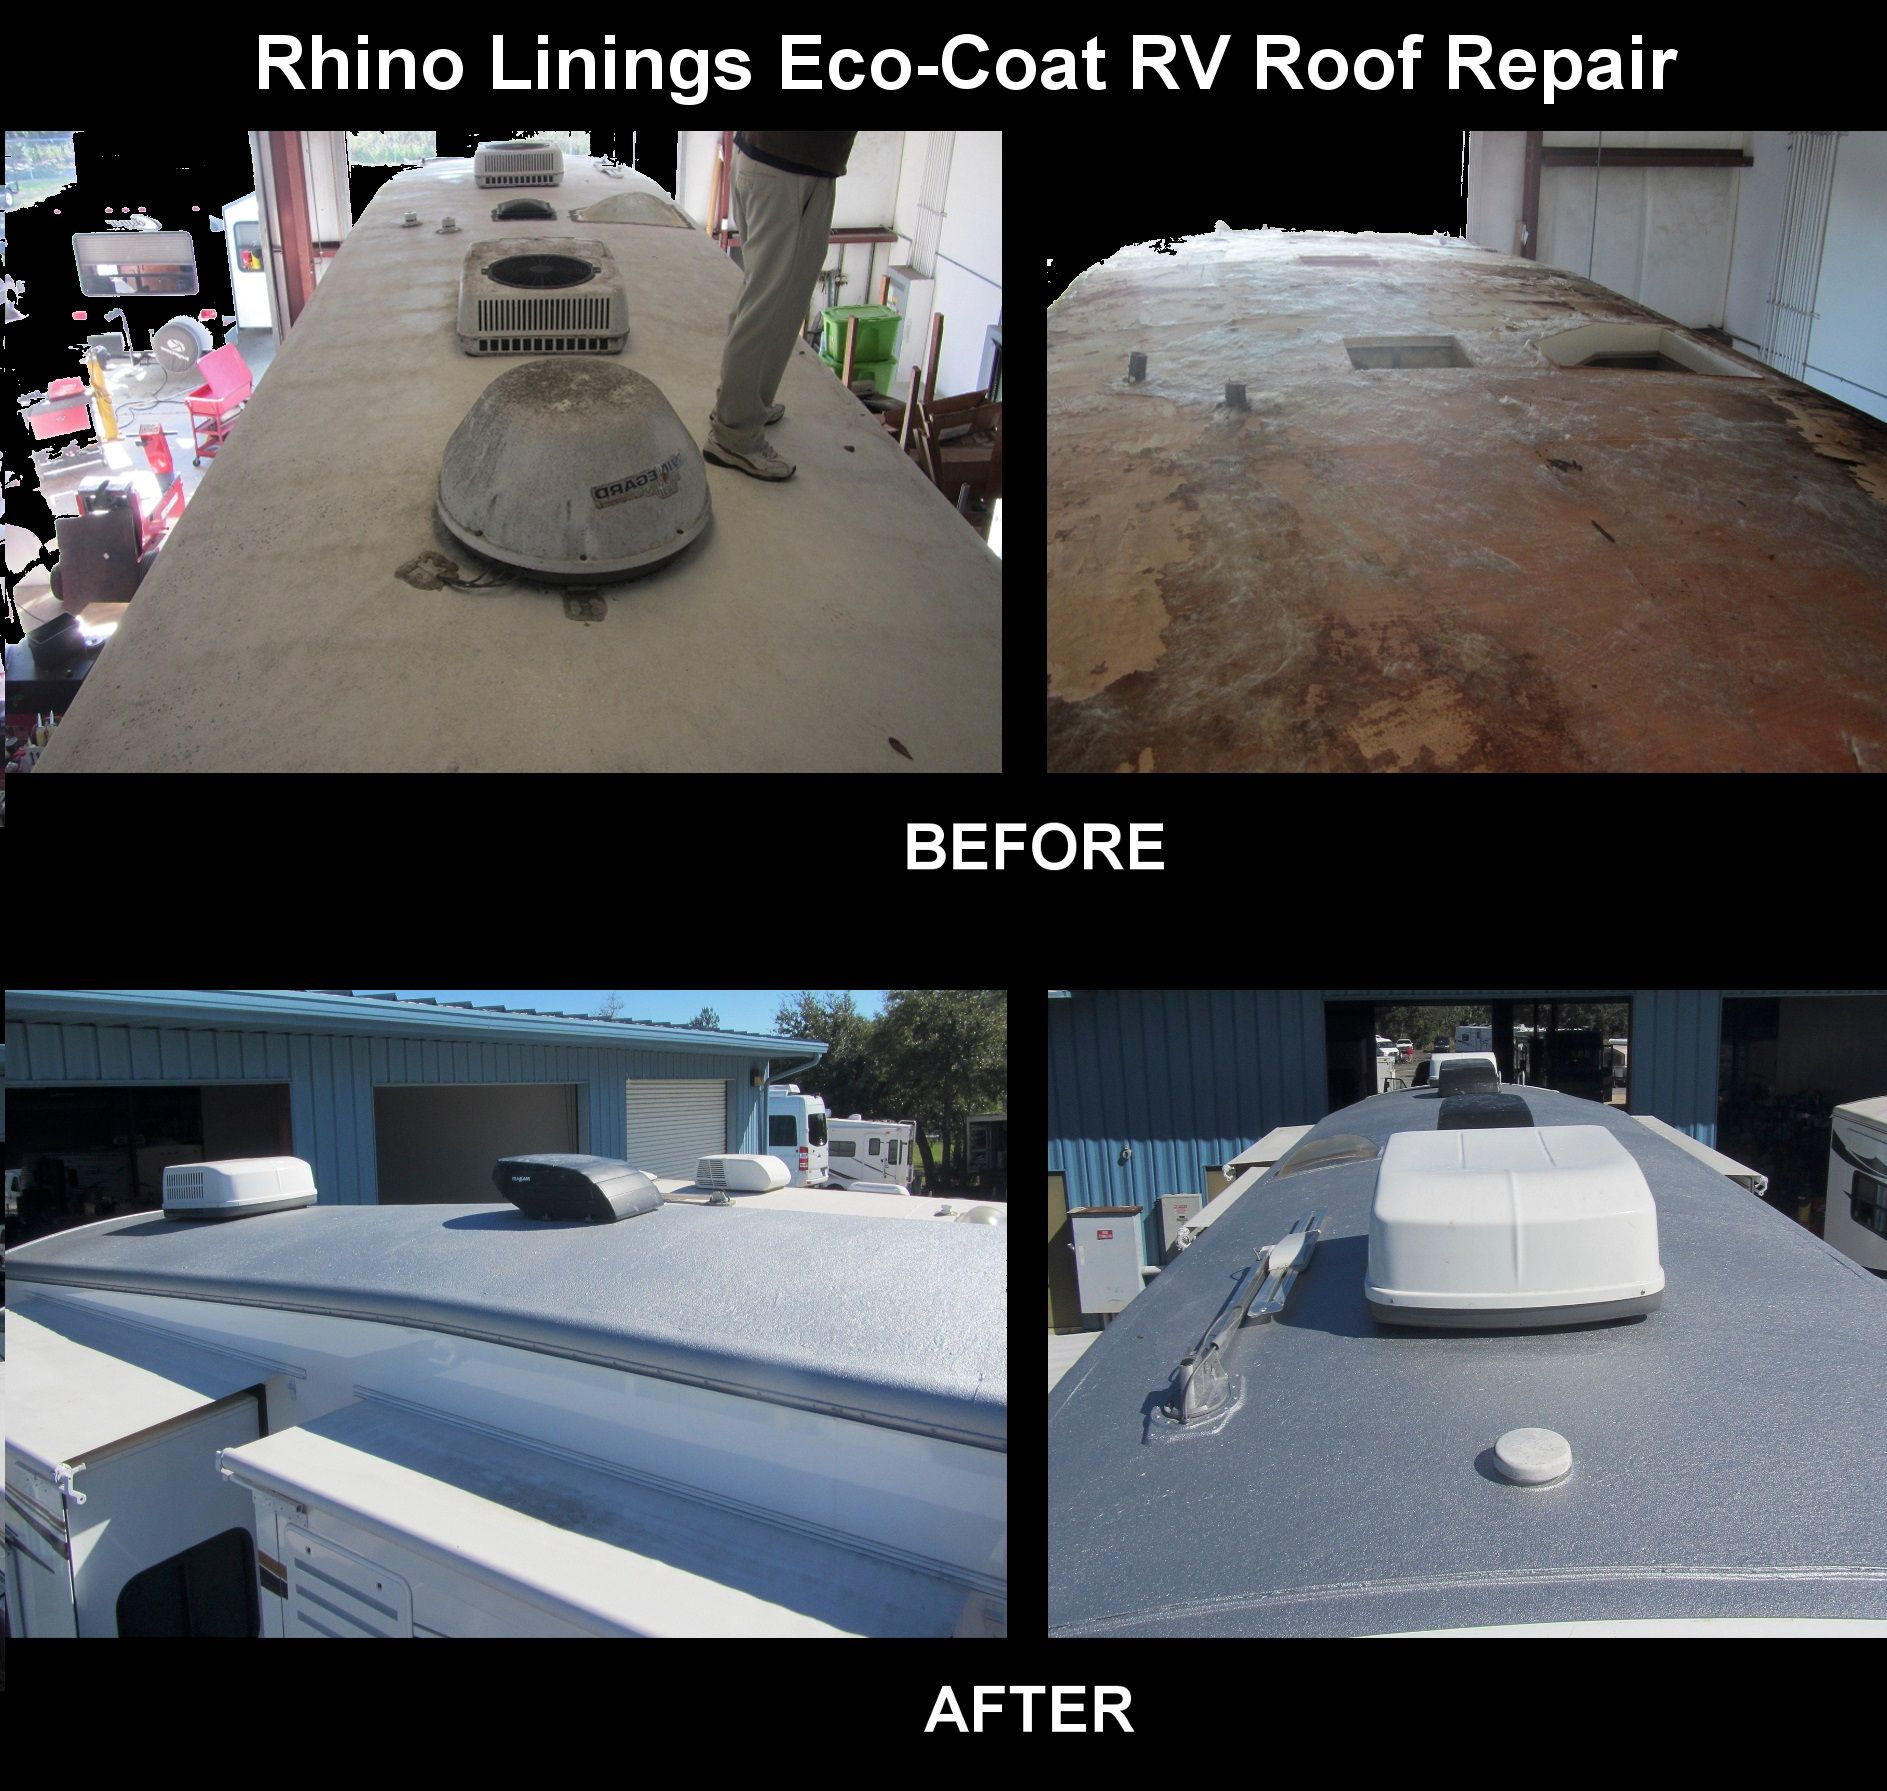 before and after photos of the rhino linings eco coat permanent rv